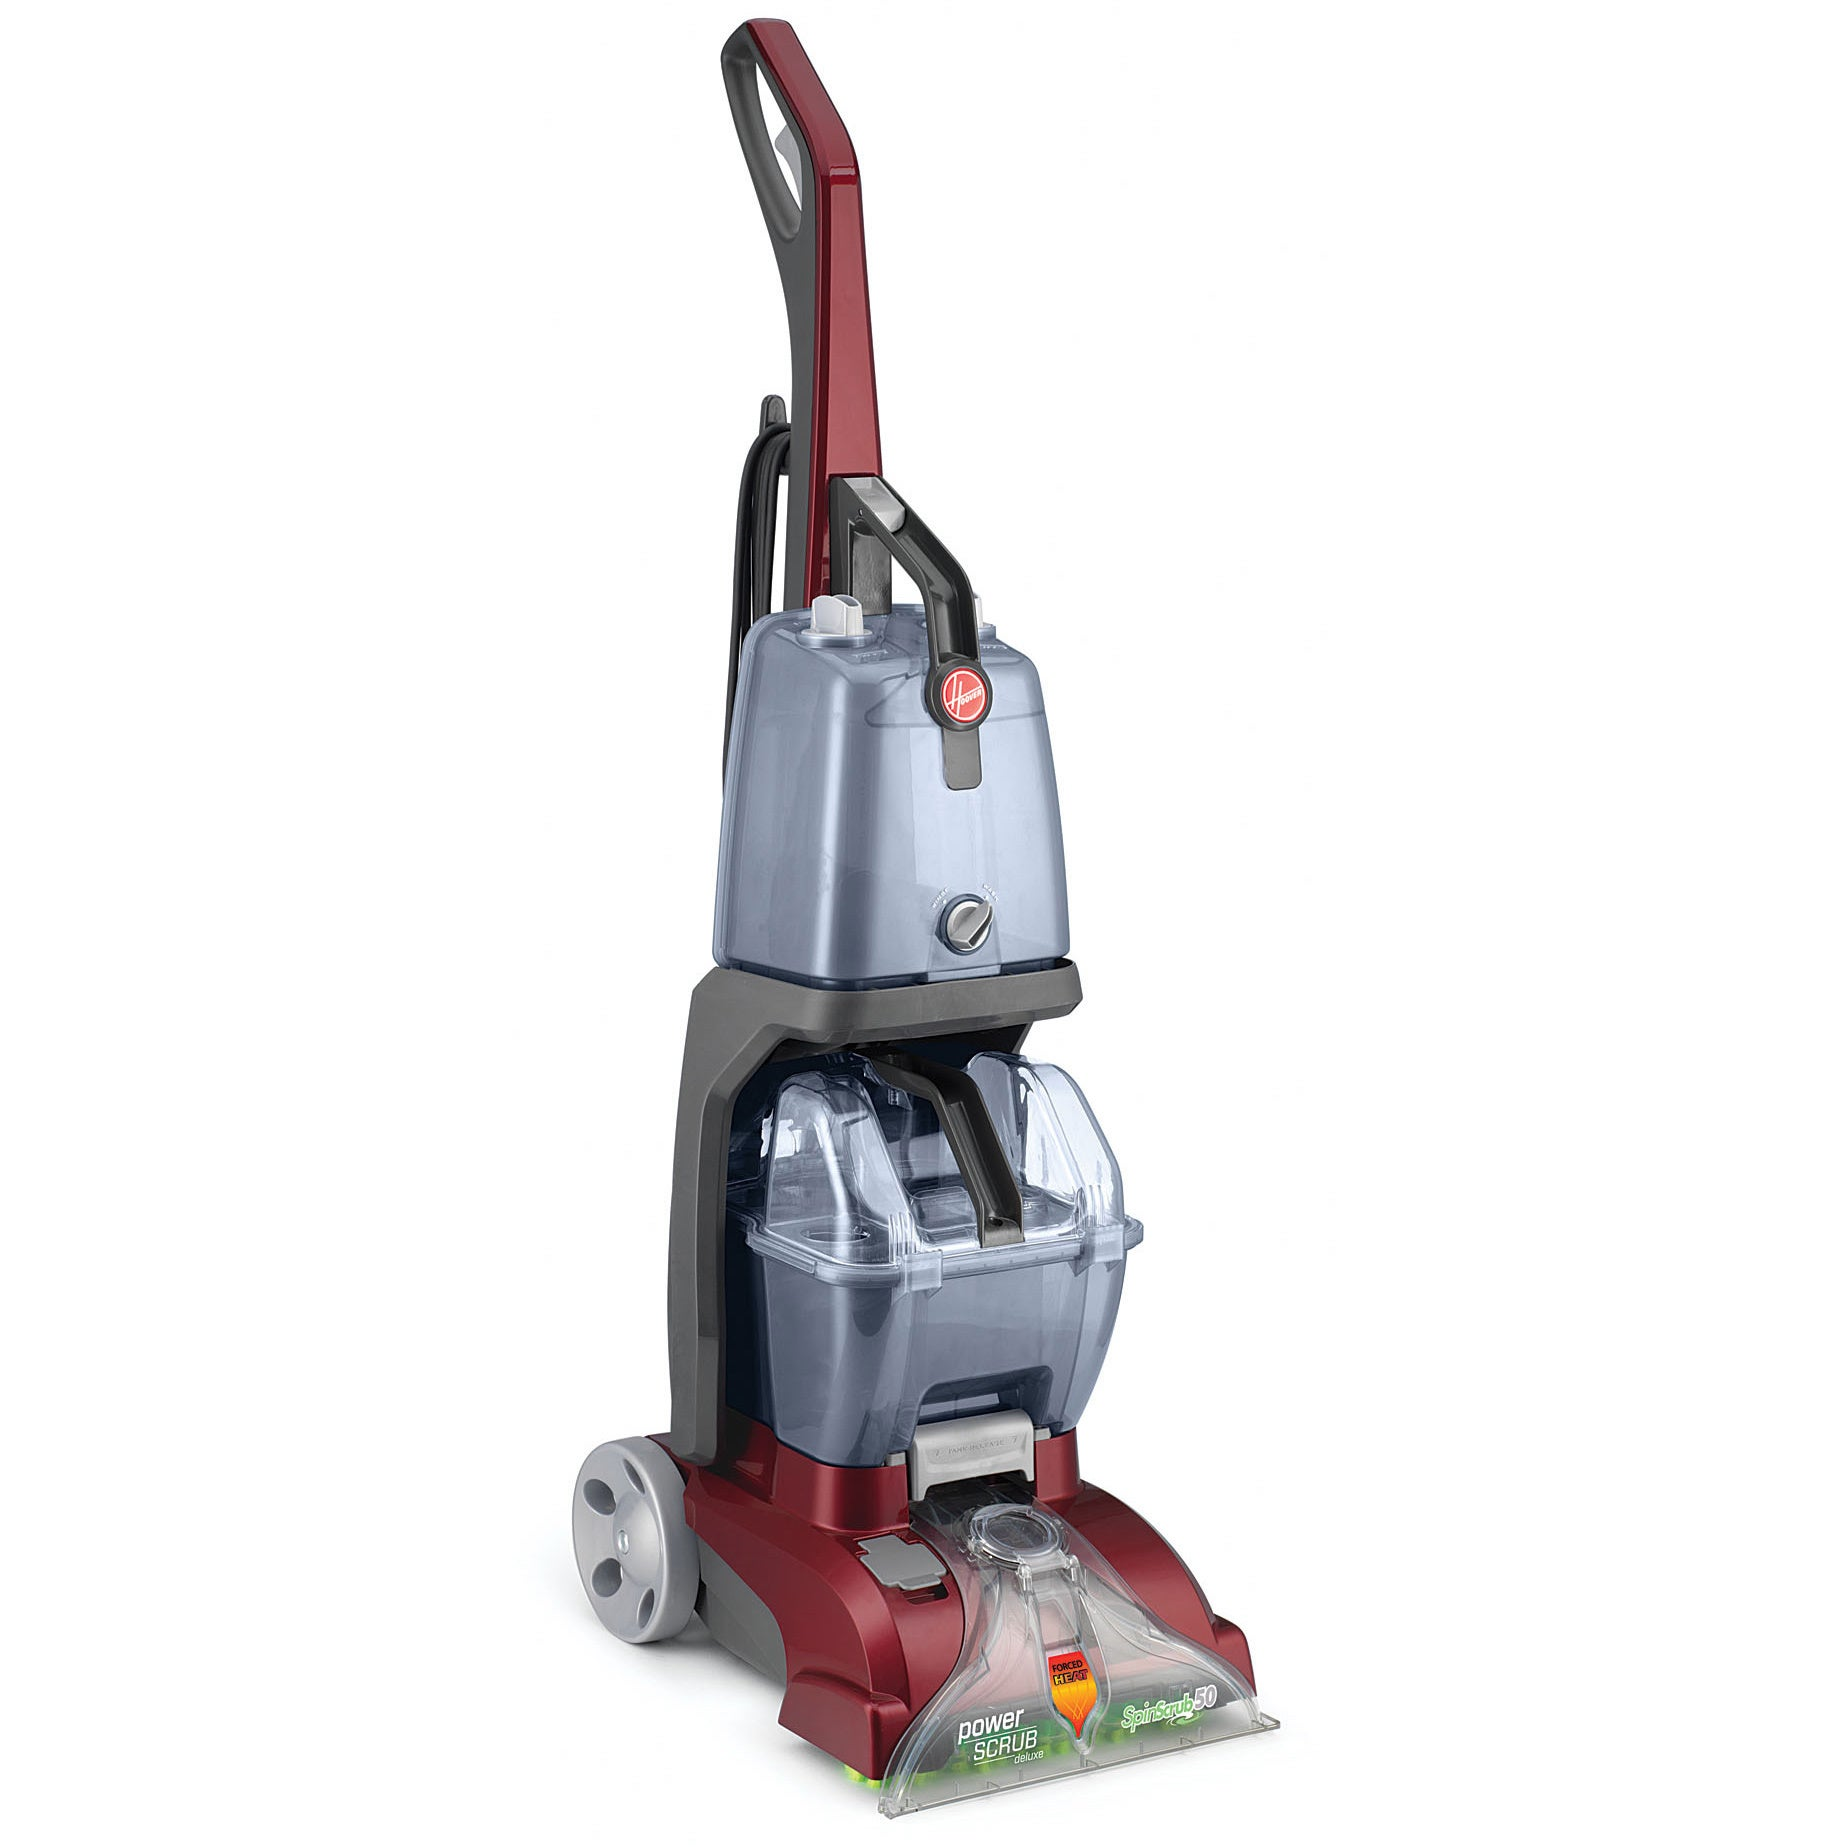 Shop Hoover Fh50150 Power Scrub Deluxe Carpet Cleaner Free Bissell Proheat 2x Parts Diagram Car Interior Design Shipping Today 9316790